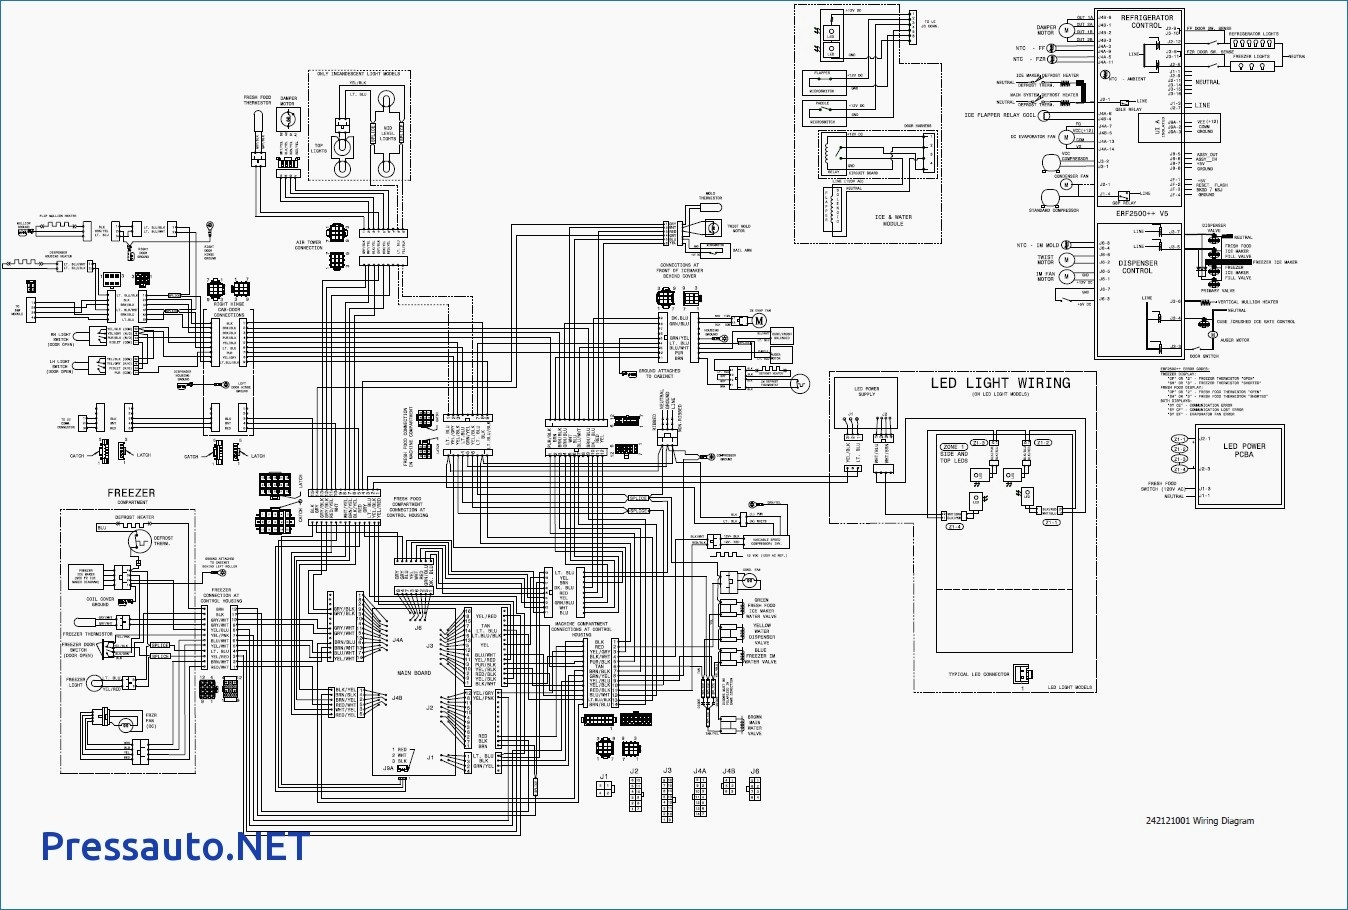 Ice Maker Wiring Diagram | Wiring Diagram Database on refrigerator wiring diagram, dishwasher wiring diagram, maytag dryer wiring diagram, trash compactor wiring diagram, ice maker schematic diagram, garbage disposal wiring diagram, microwave wiring diagram,